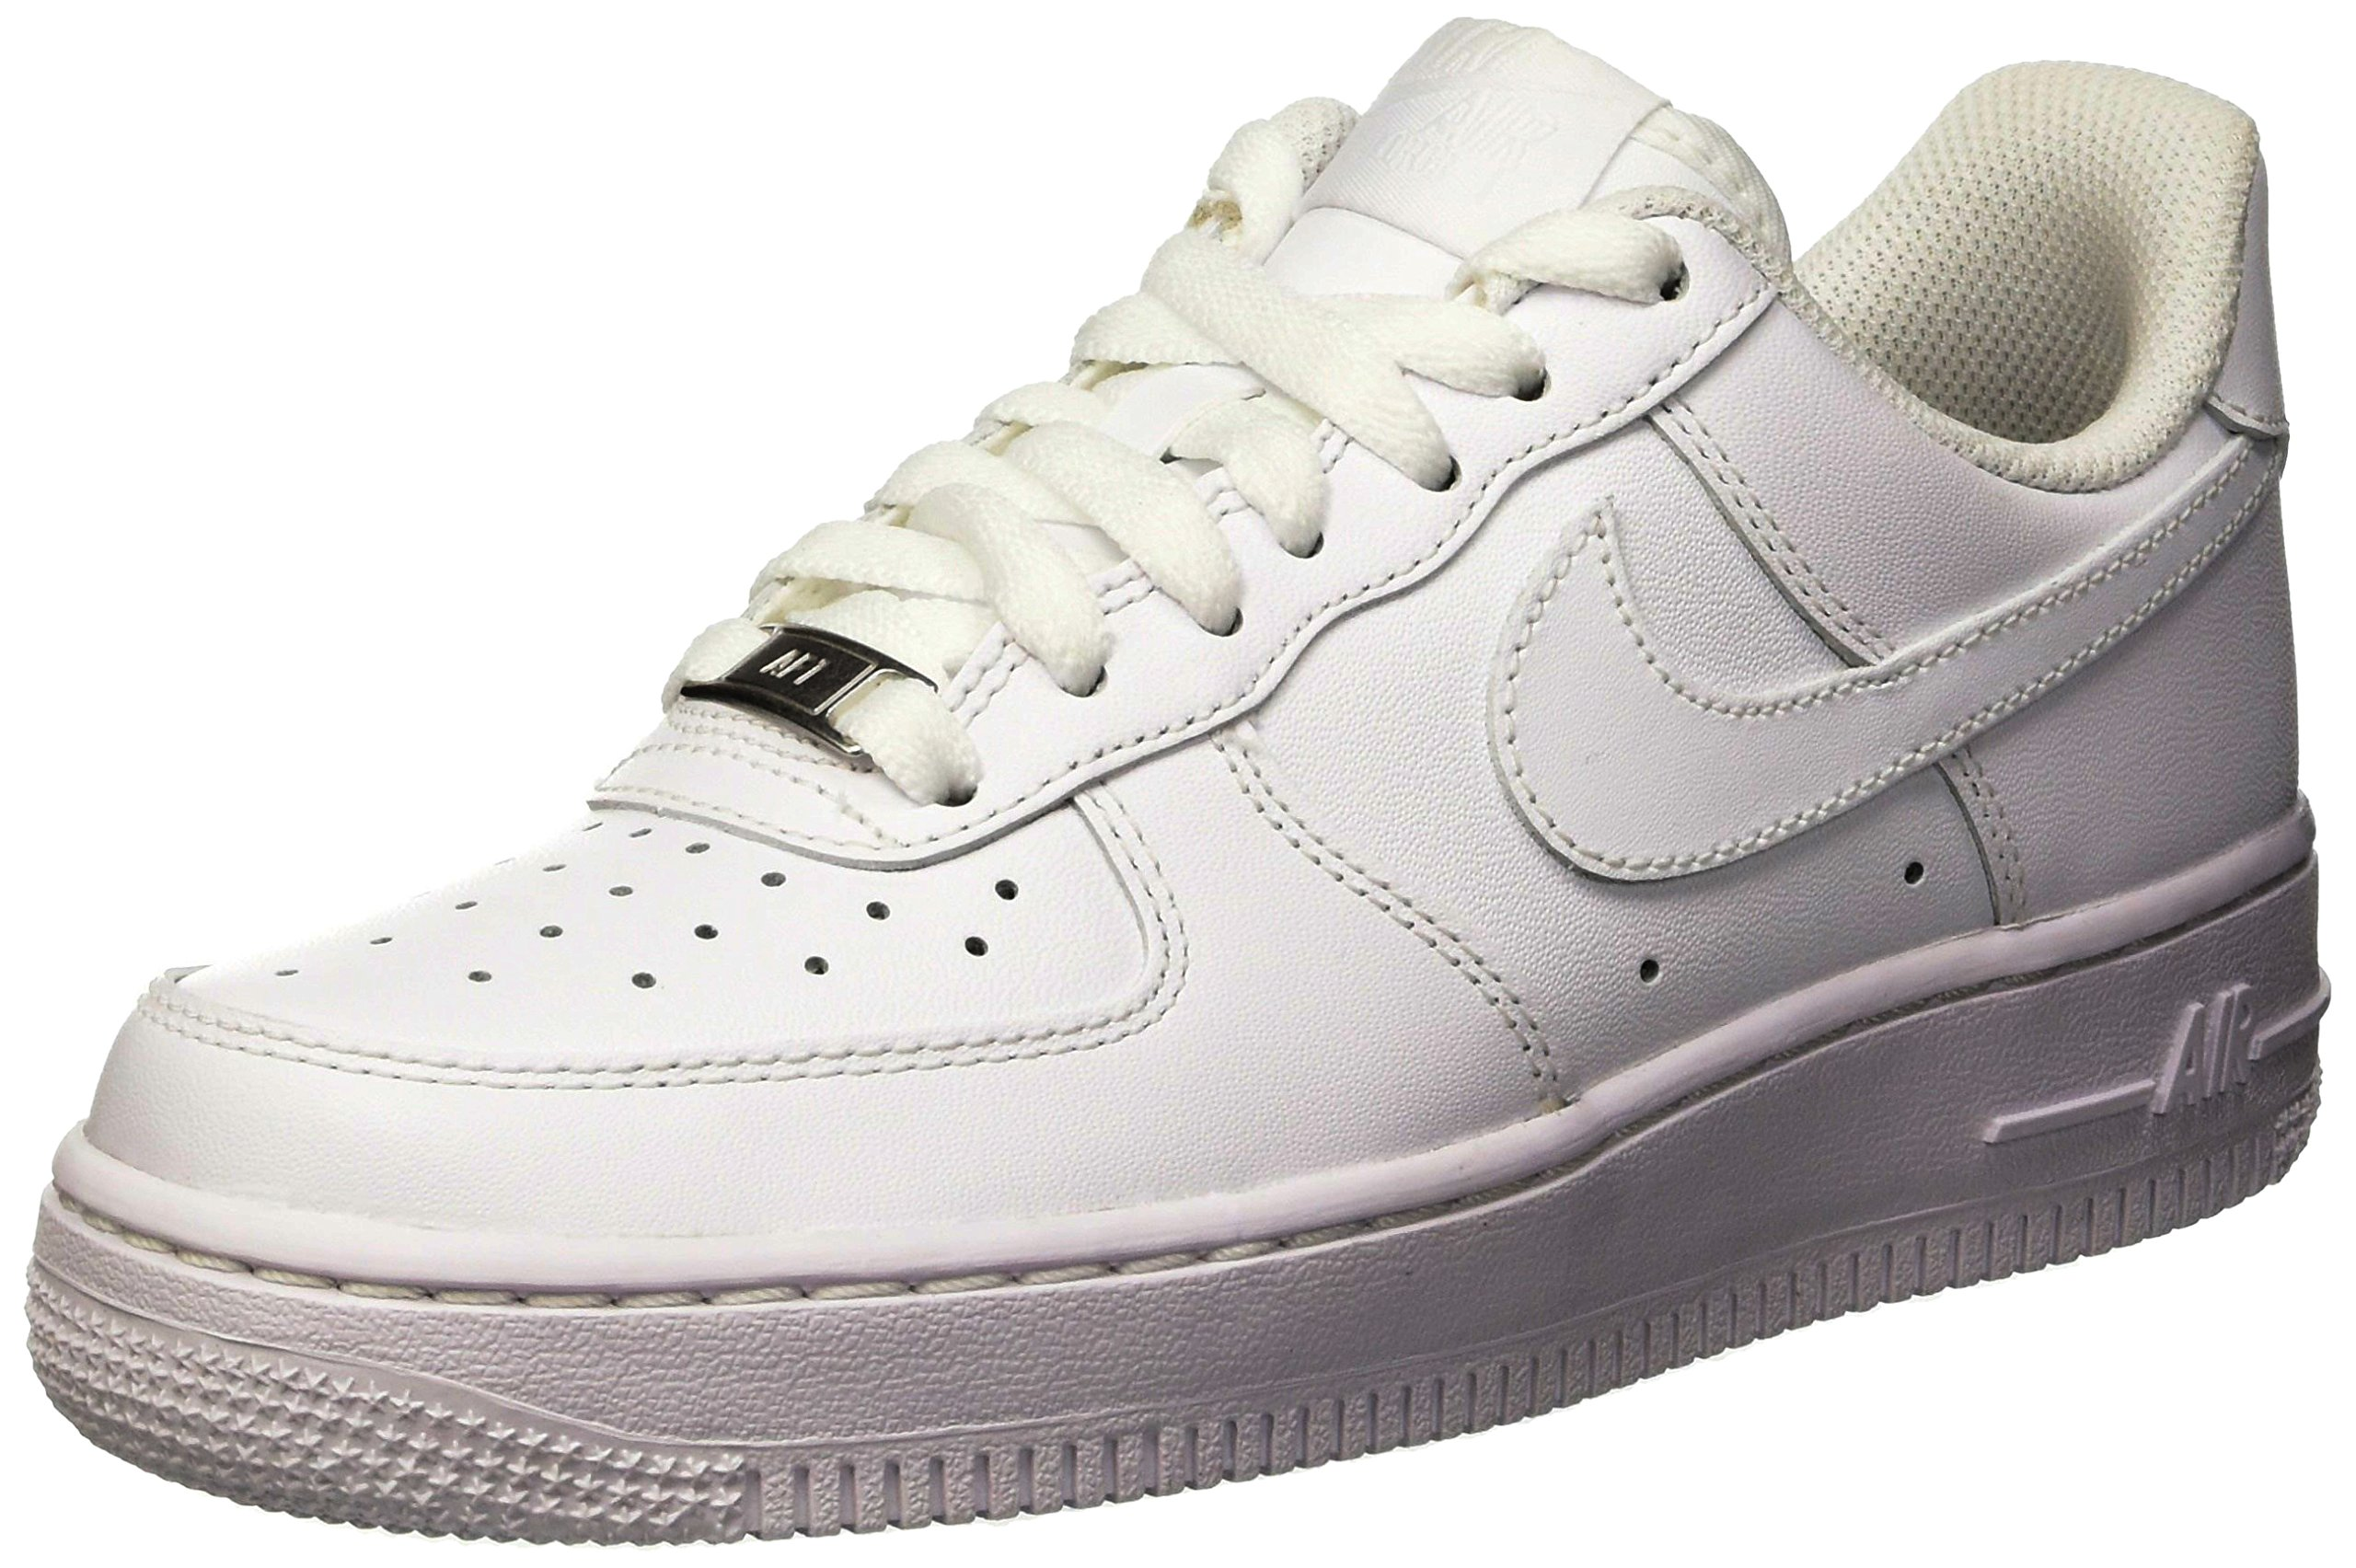 NIKE Women's Air Force 1 '07 Basketball Shoes White 315115-112 (8.5)